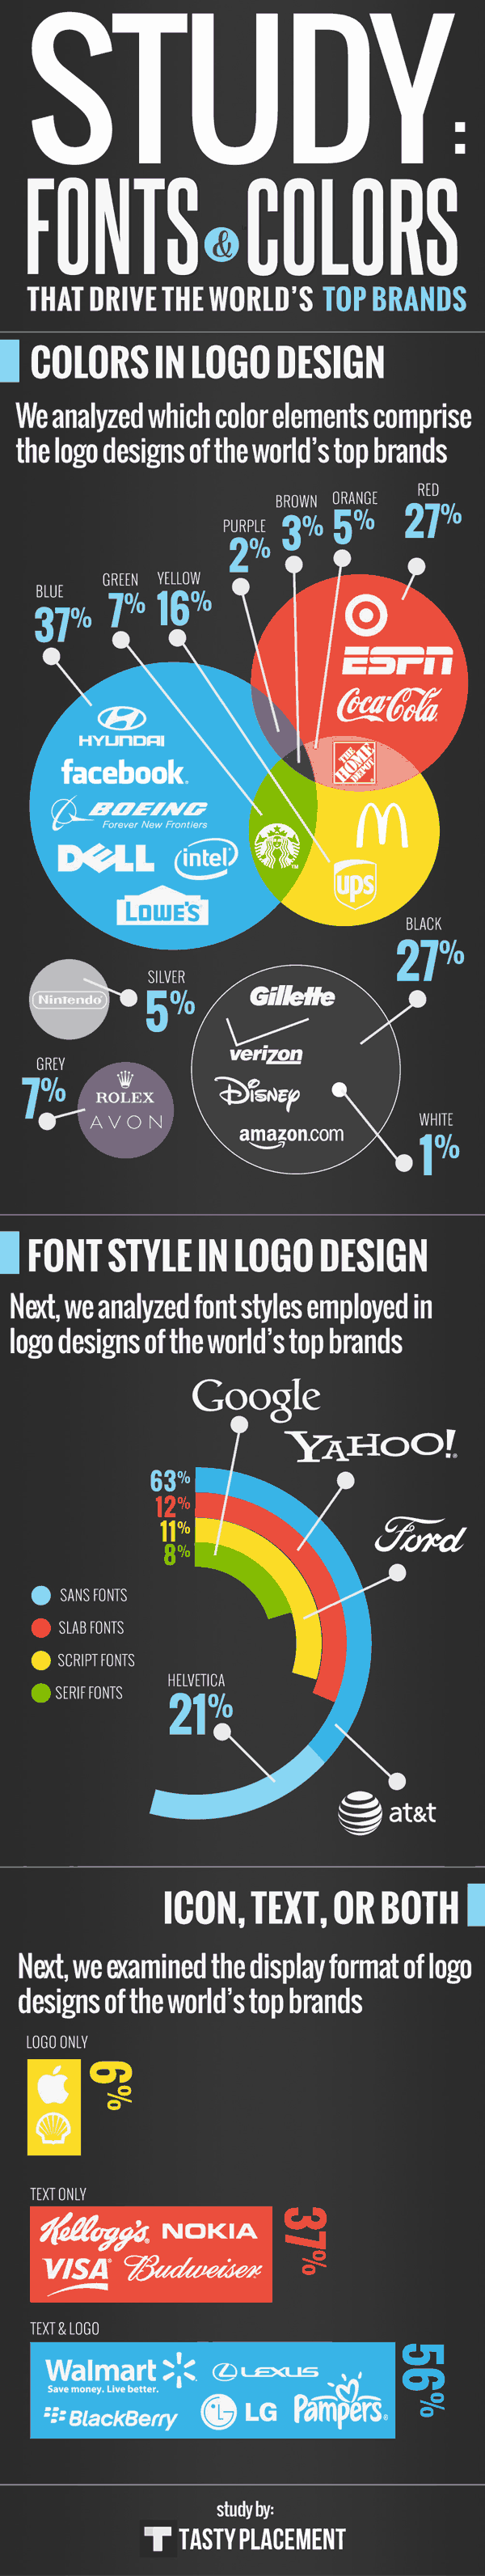 Which Fonts & Colors Drive Top Brands? #infographic